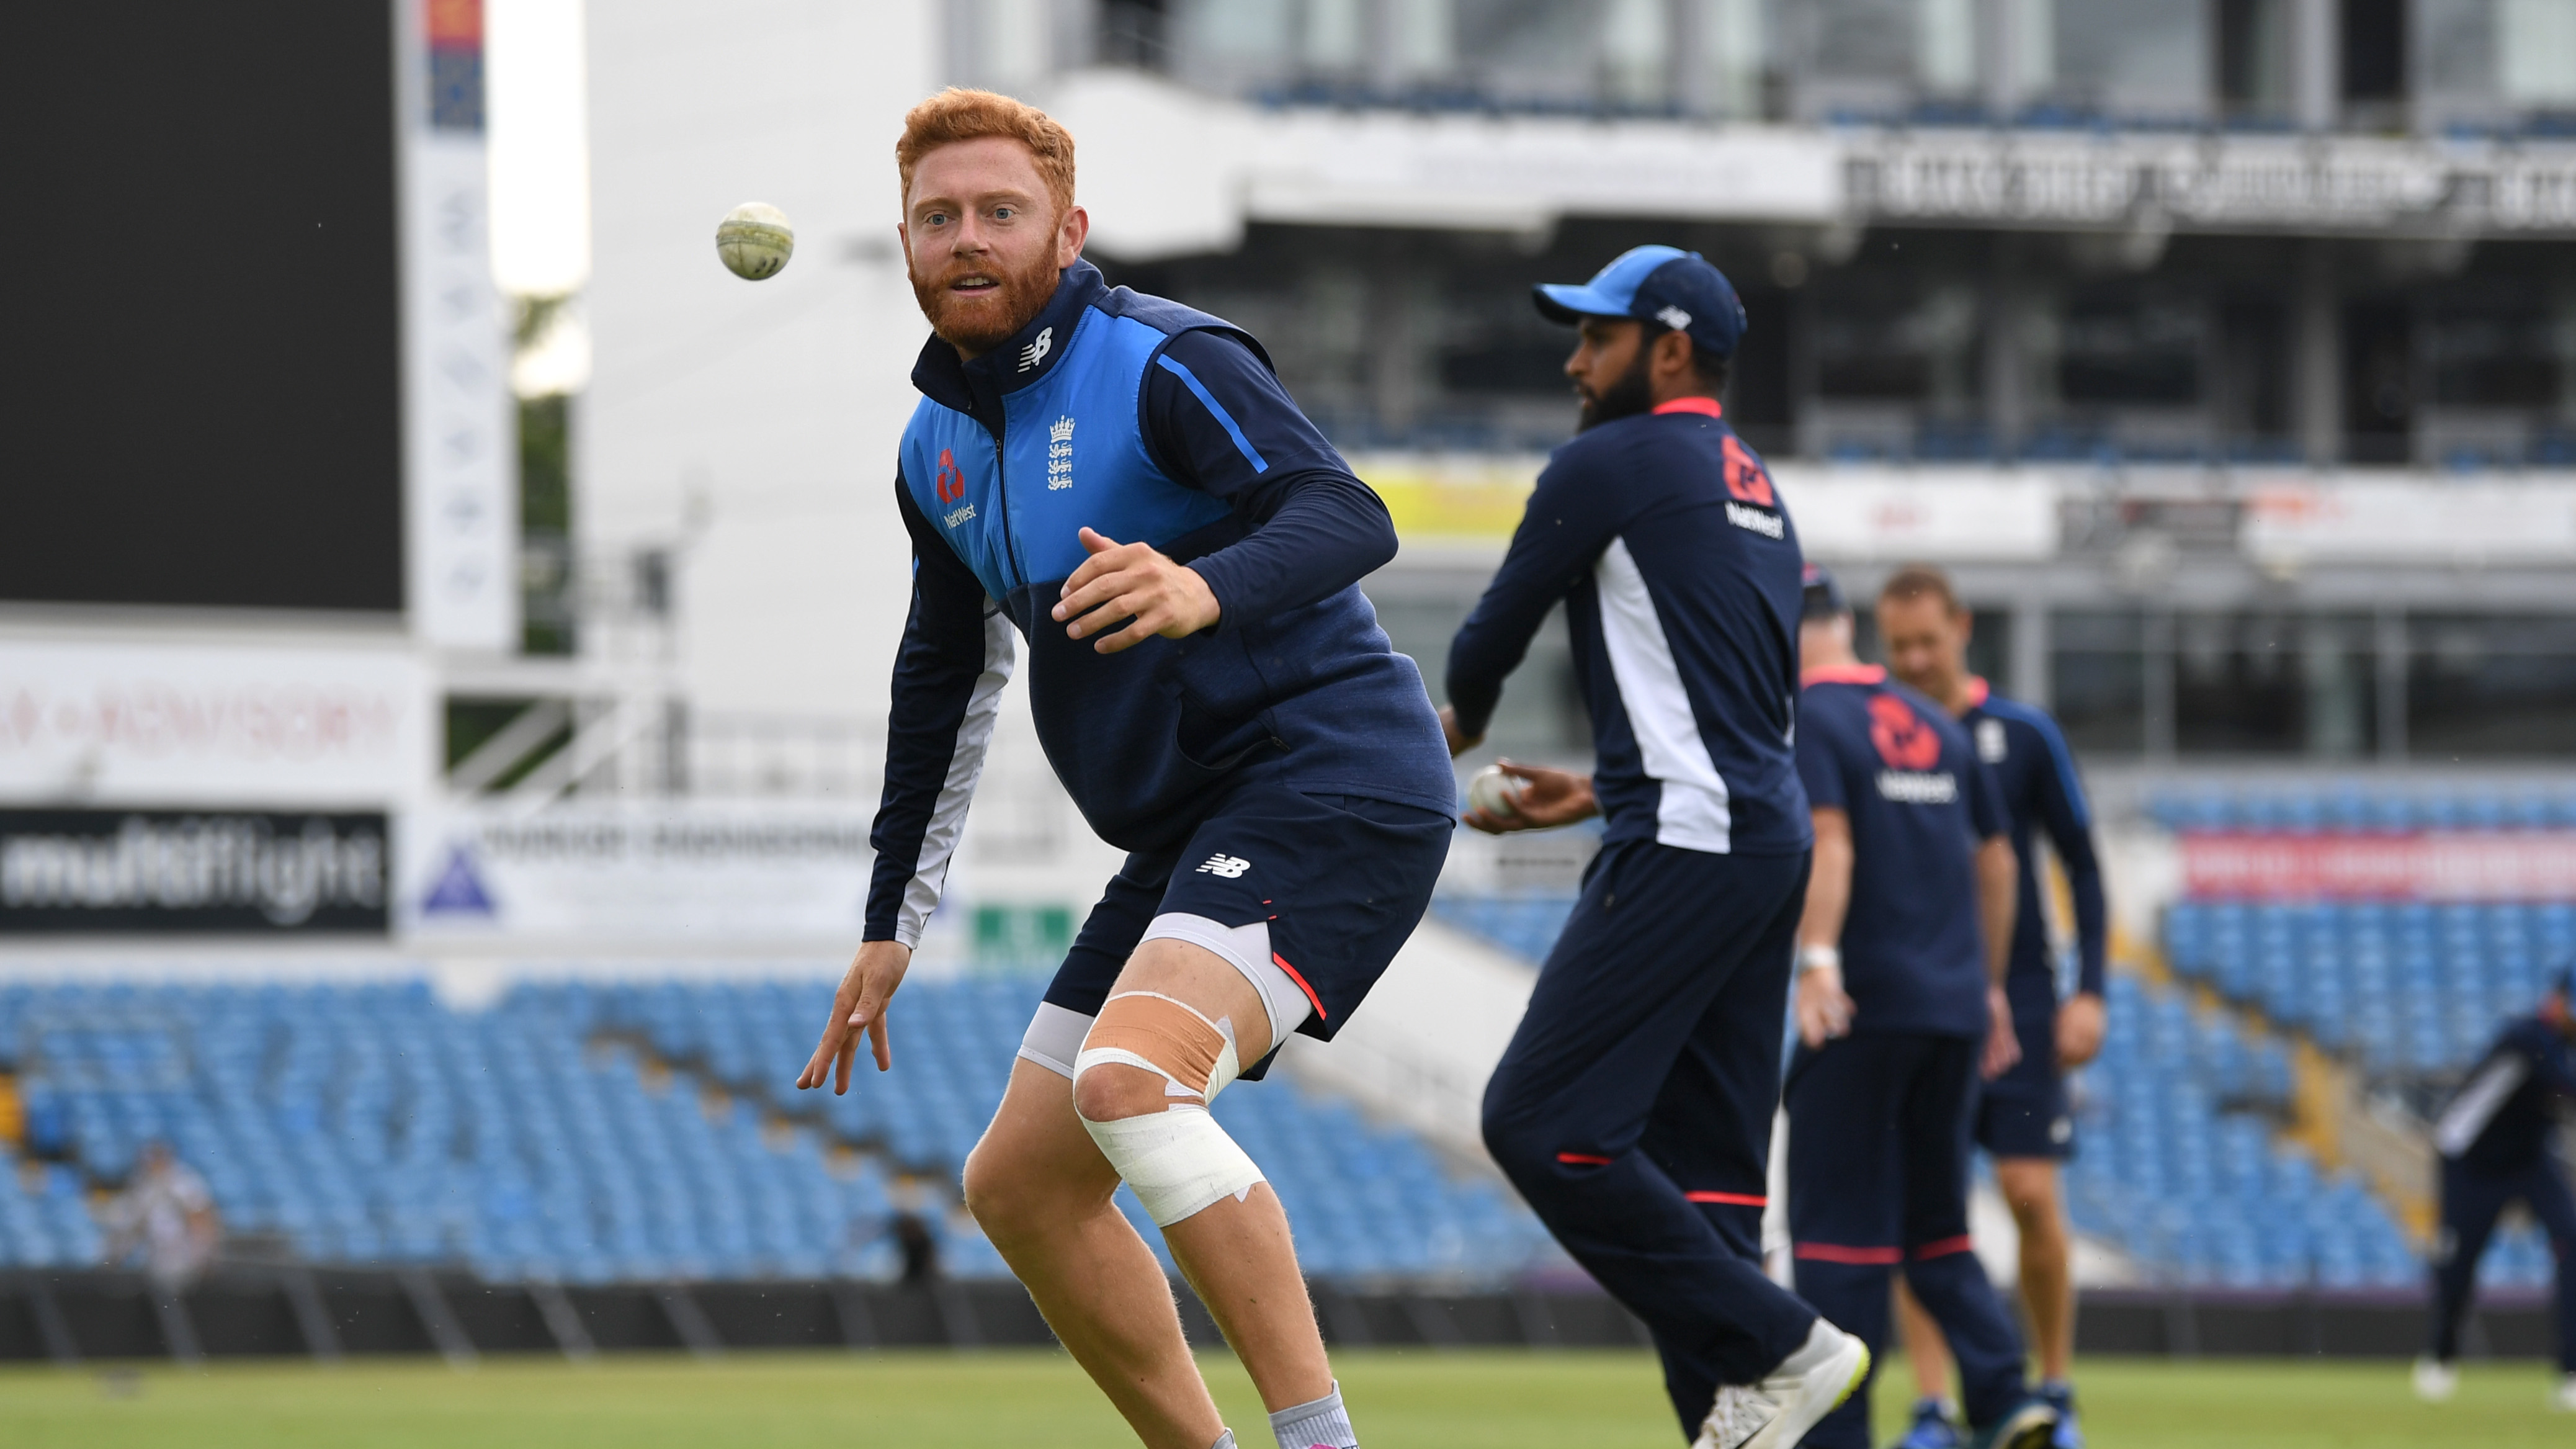 ENG vs IND 2018: Jonny Bairstow excited about Adil Rashid's return to the Test side